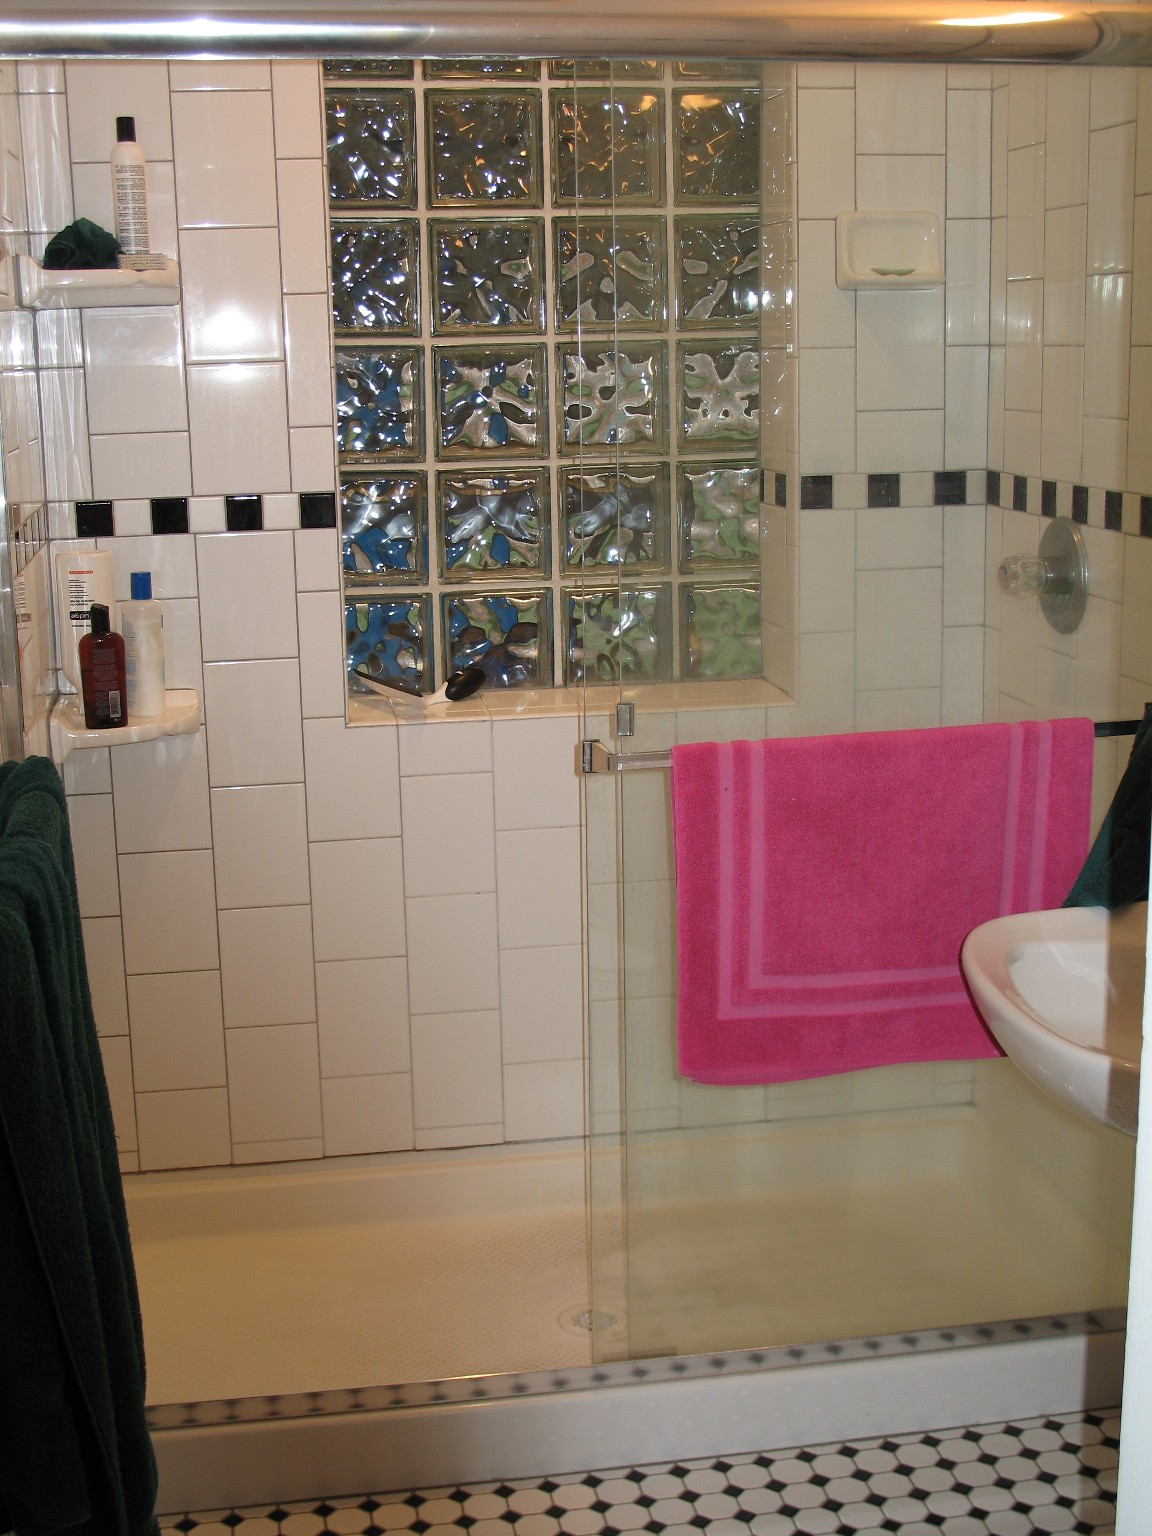 Good Przybylo With Glass Block Window In Shower.